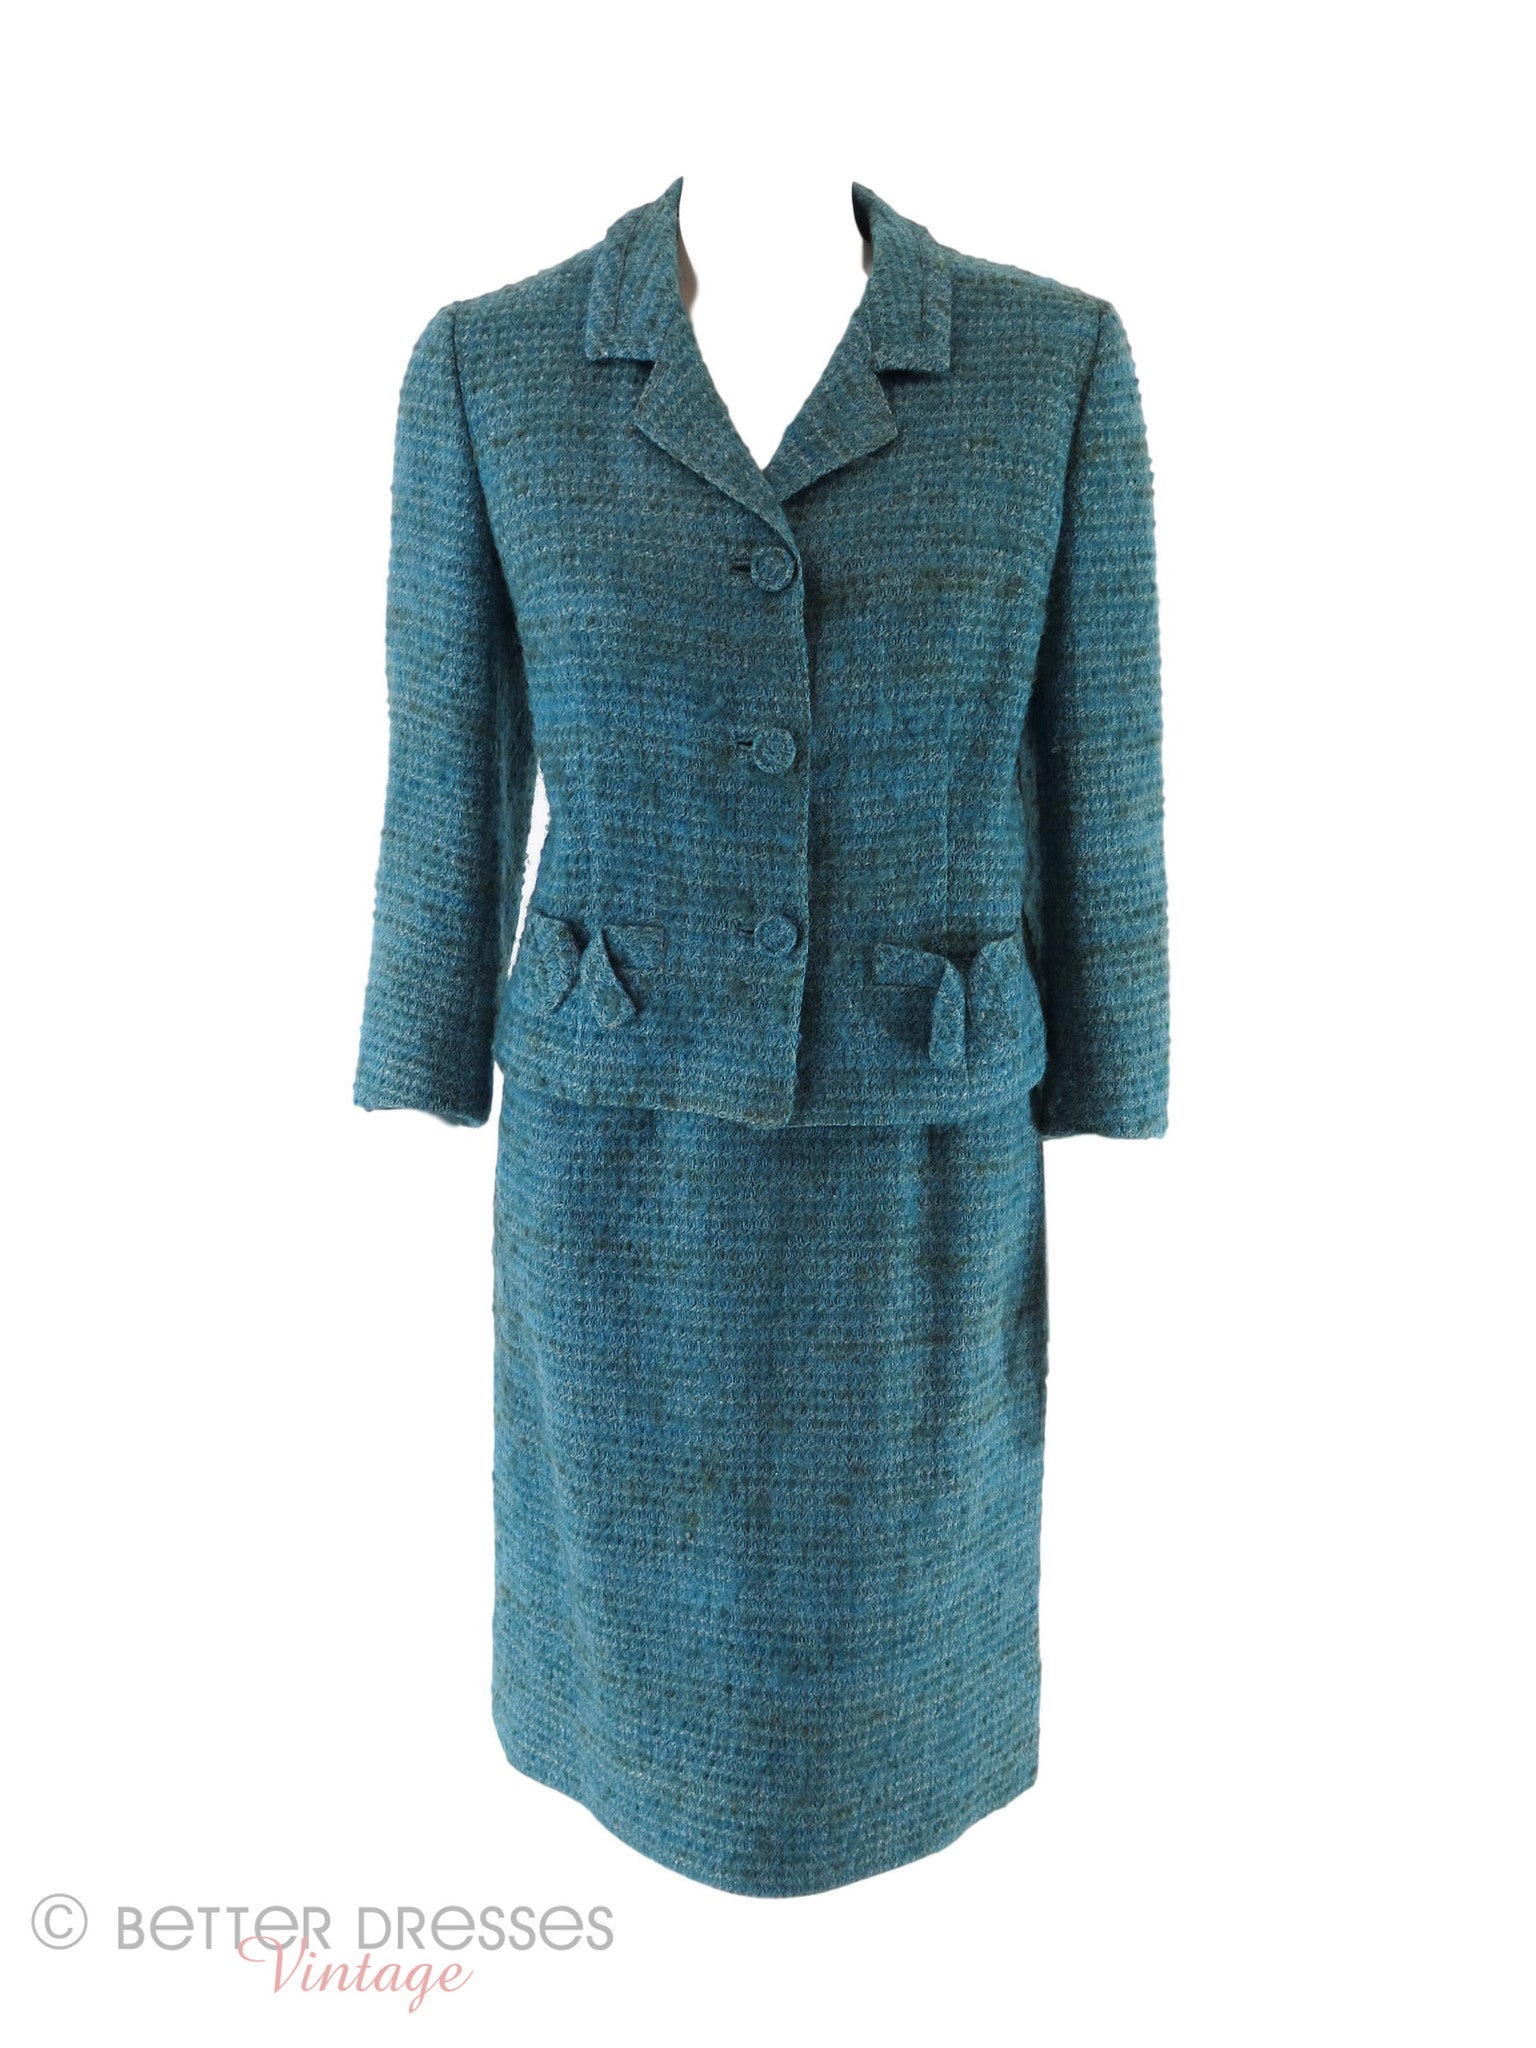 60s Teal Tweed Skirt Suit - sm, med – Better Dresses Vintage